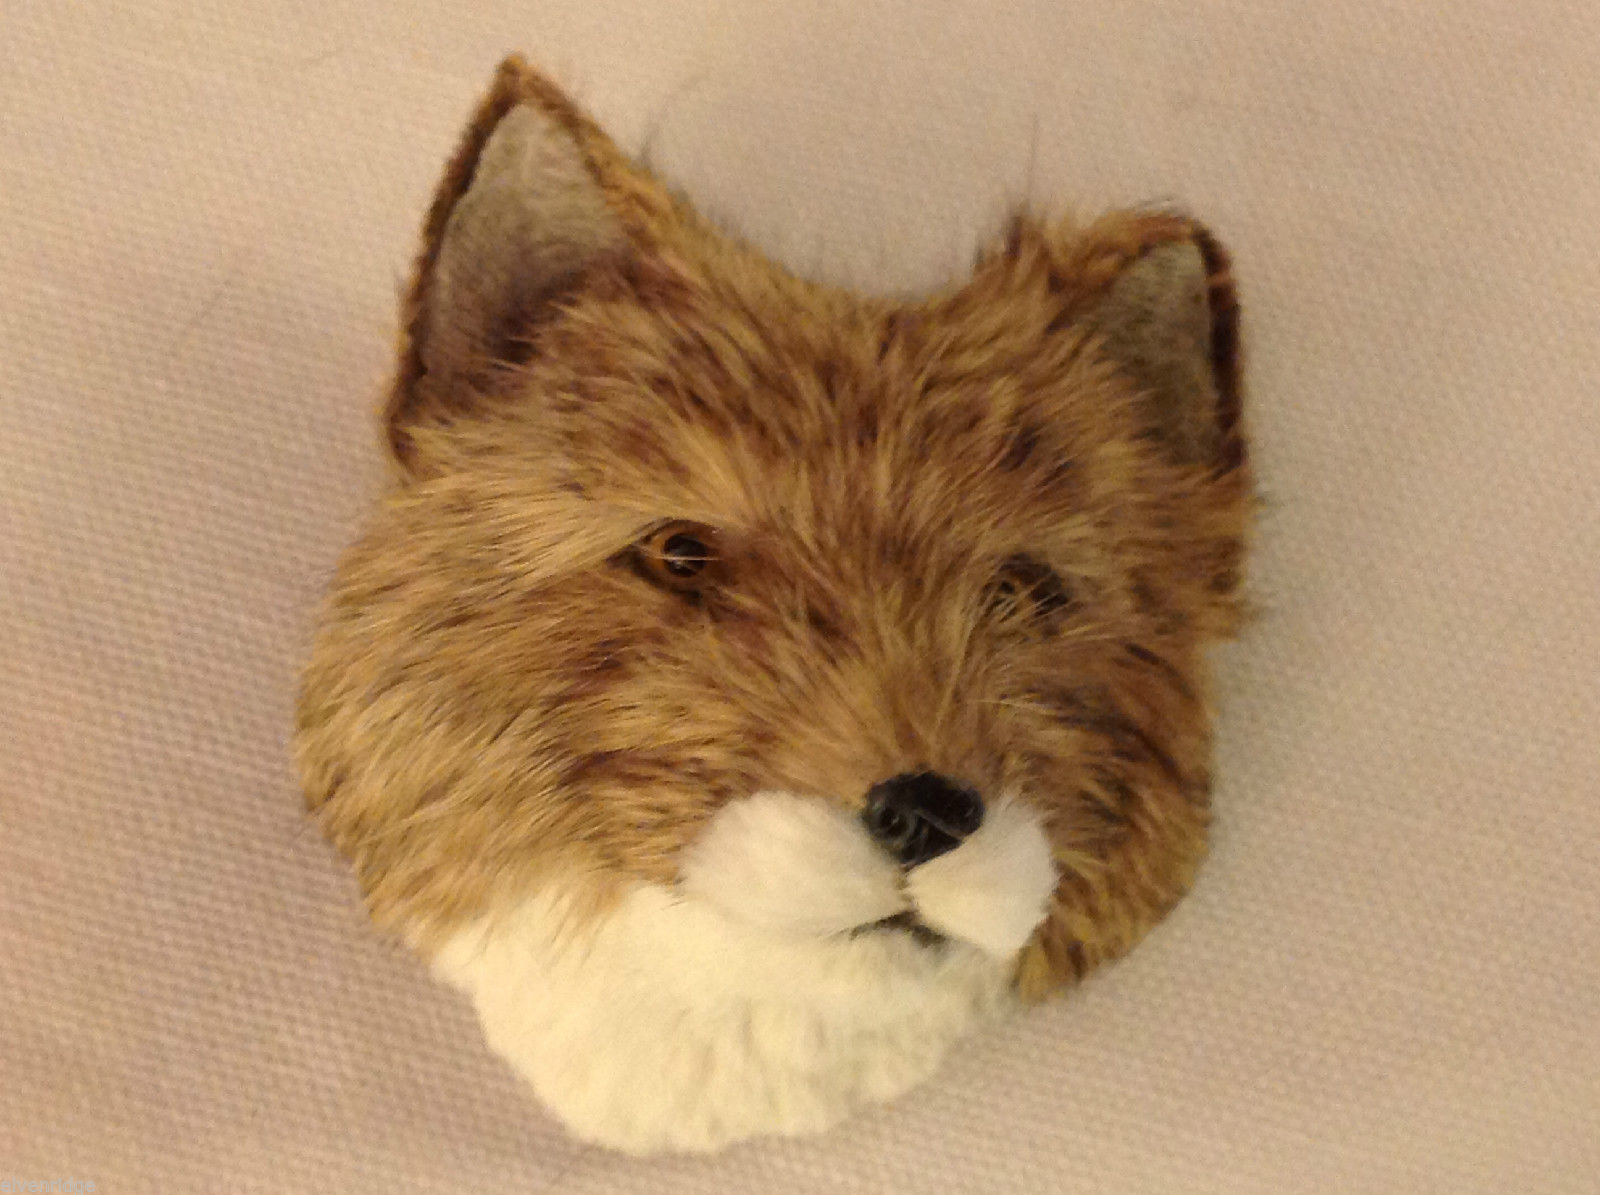 Coyote   furry refrigerator magnet in 3D